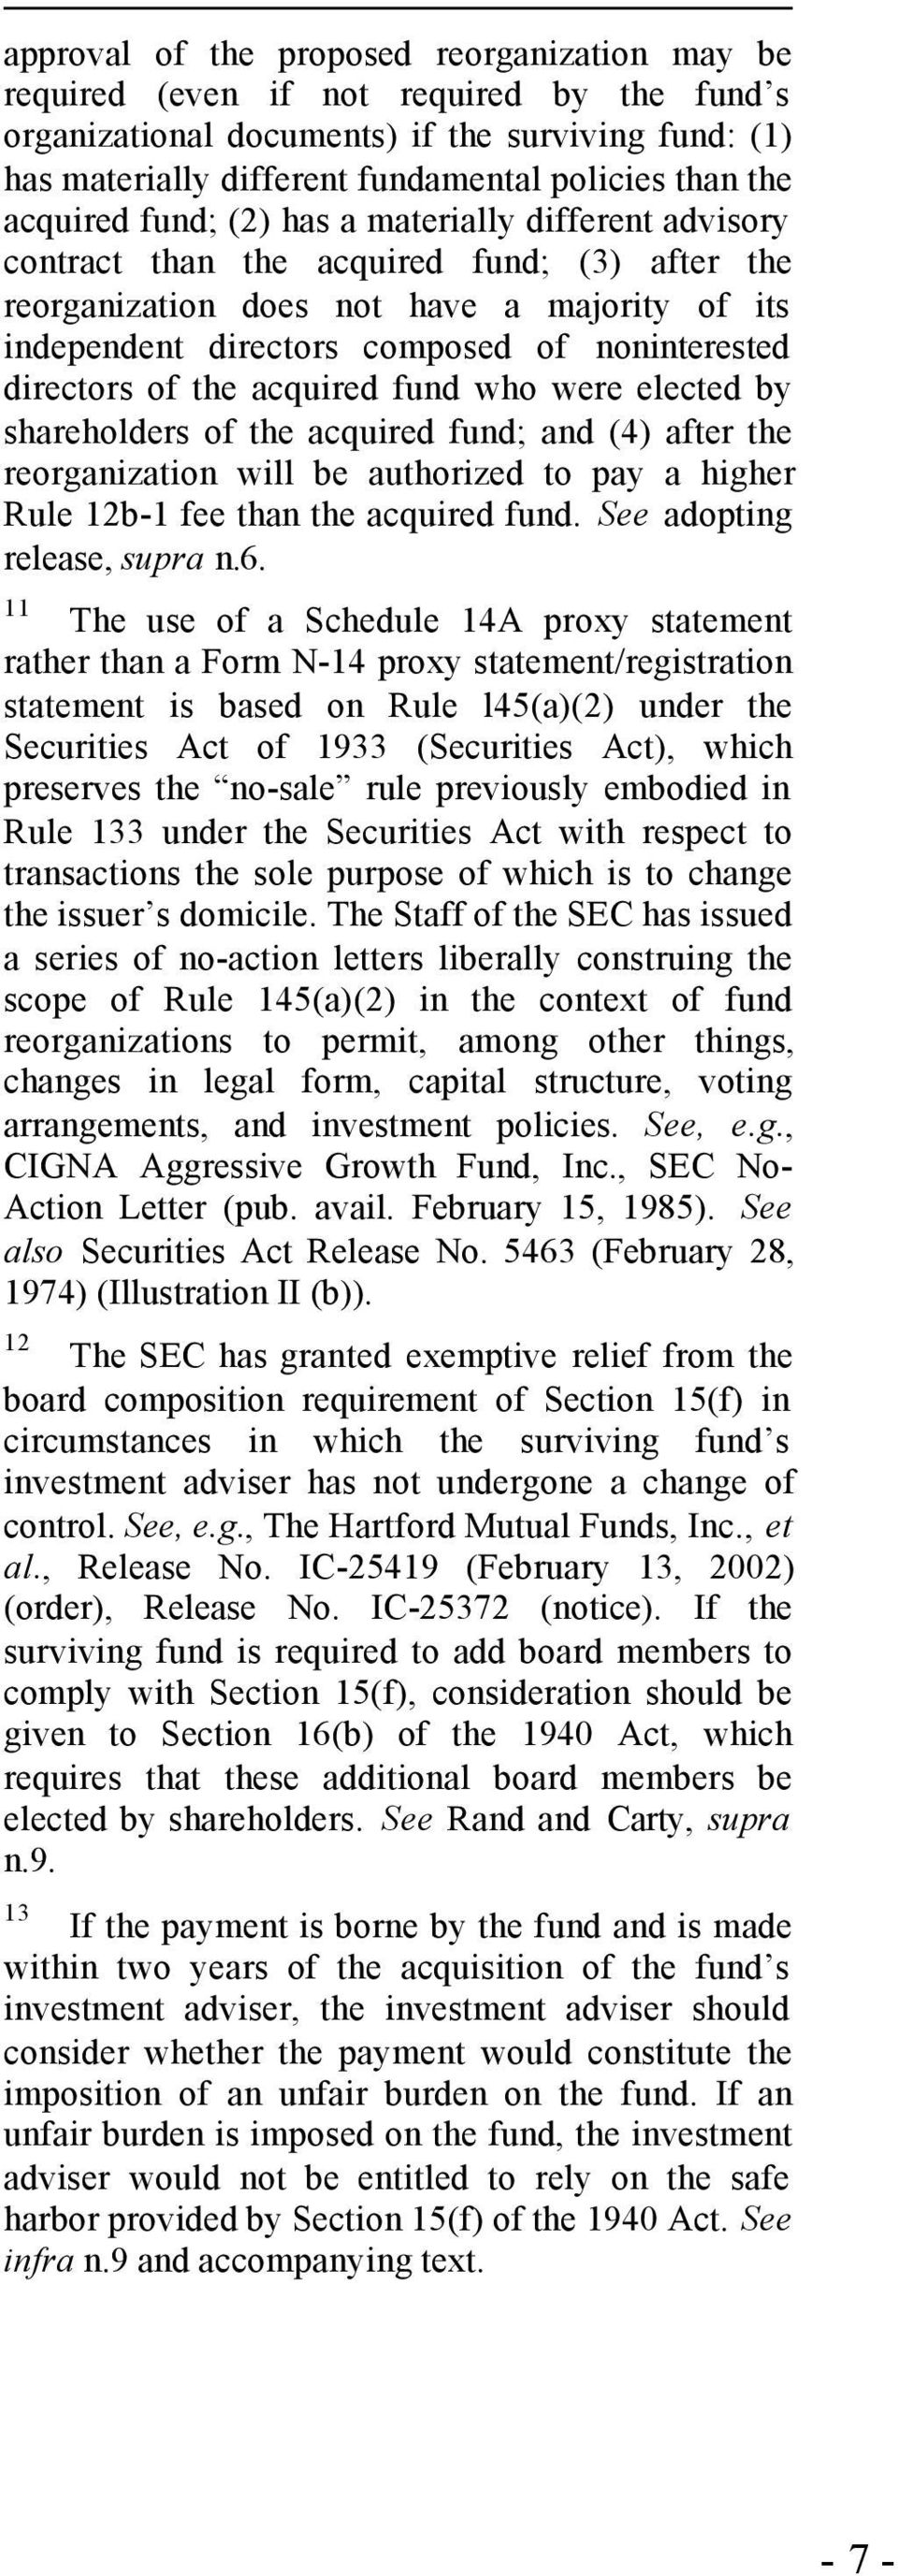 directors of the acquired fund who were elected by shareholders of the acquired fund; and (4) after the reorganization will be authorized to pay a higher Rule 12b-1 fee than the acquired fund.